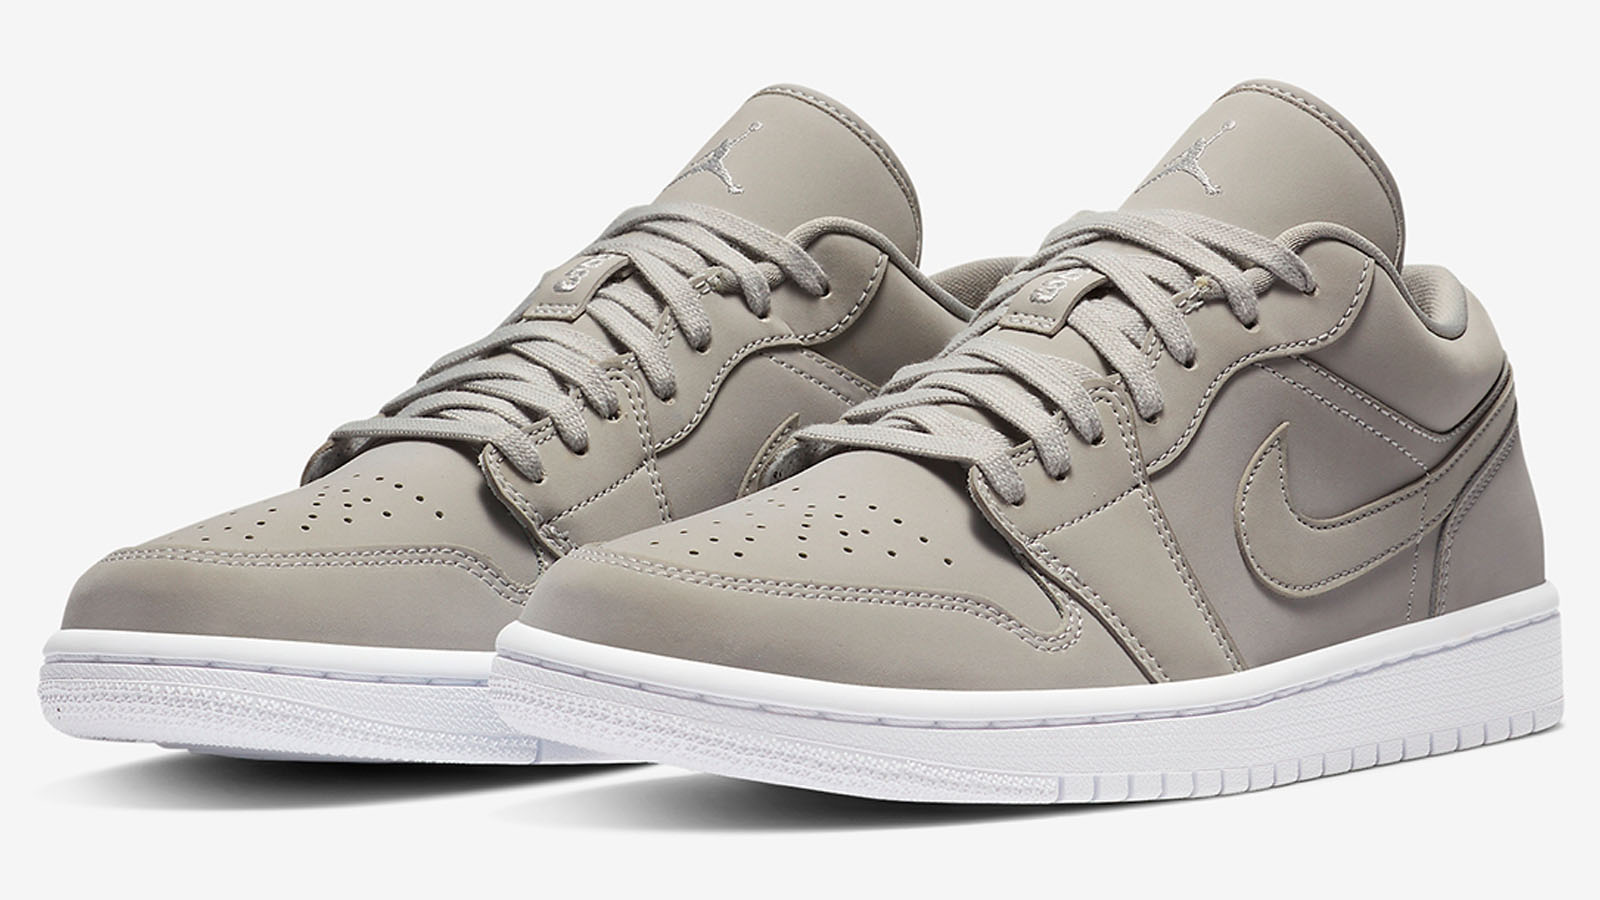 air jordan 1 grey fog